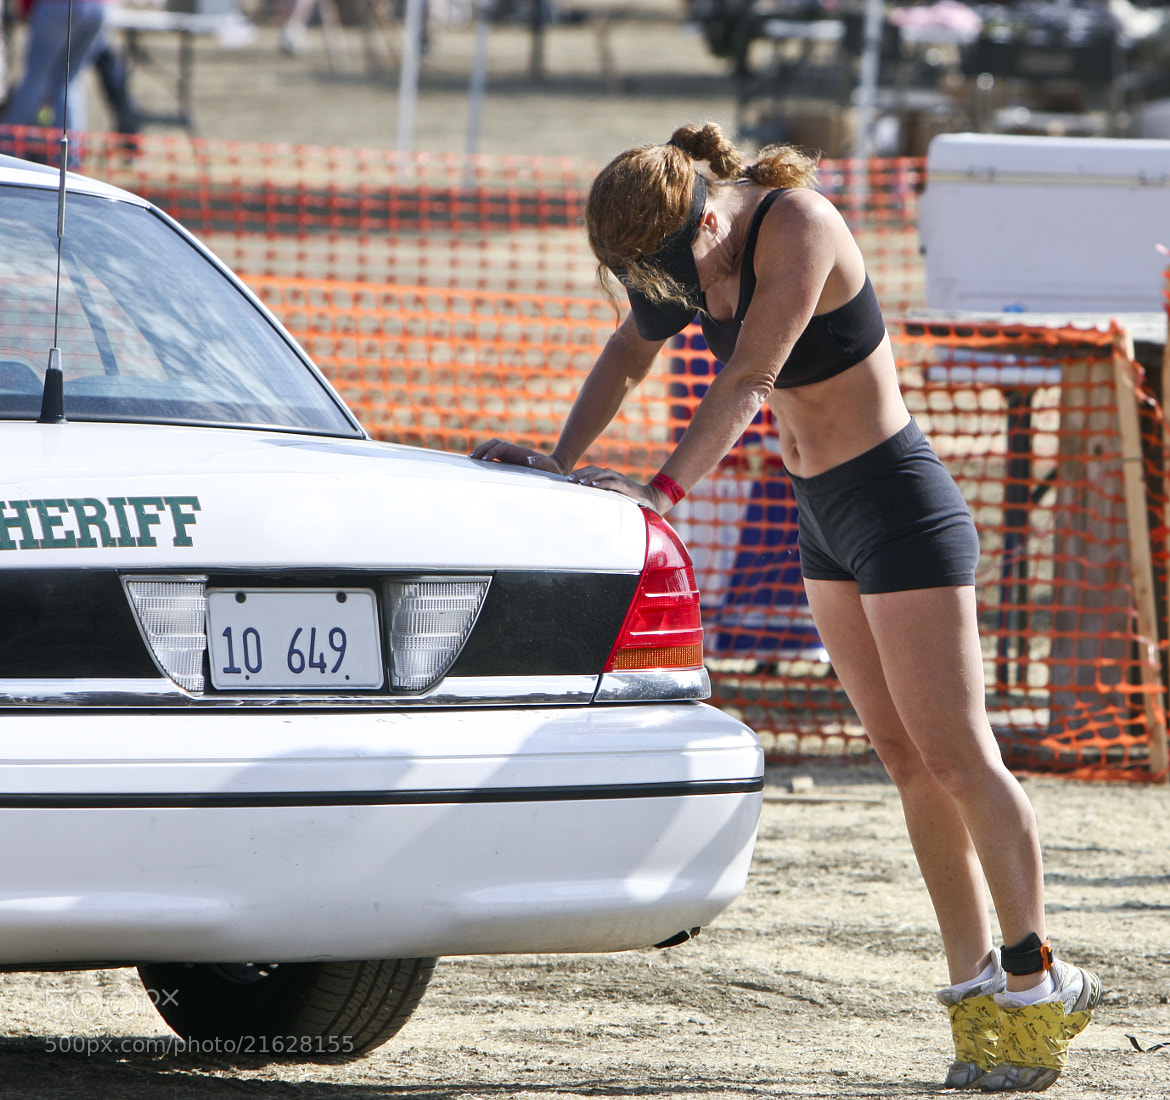 Photograph Jogging - A Woman and the Sheriffs Car by Mark Hendrickson on 500px